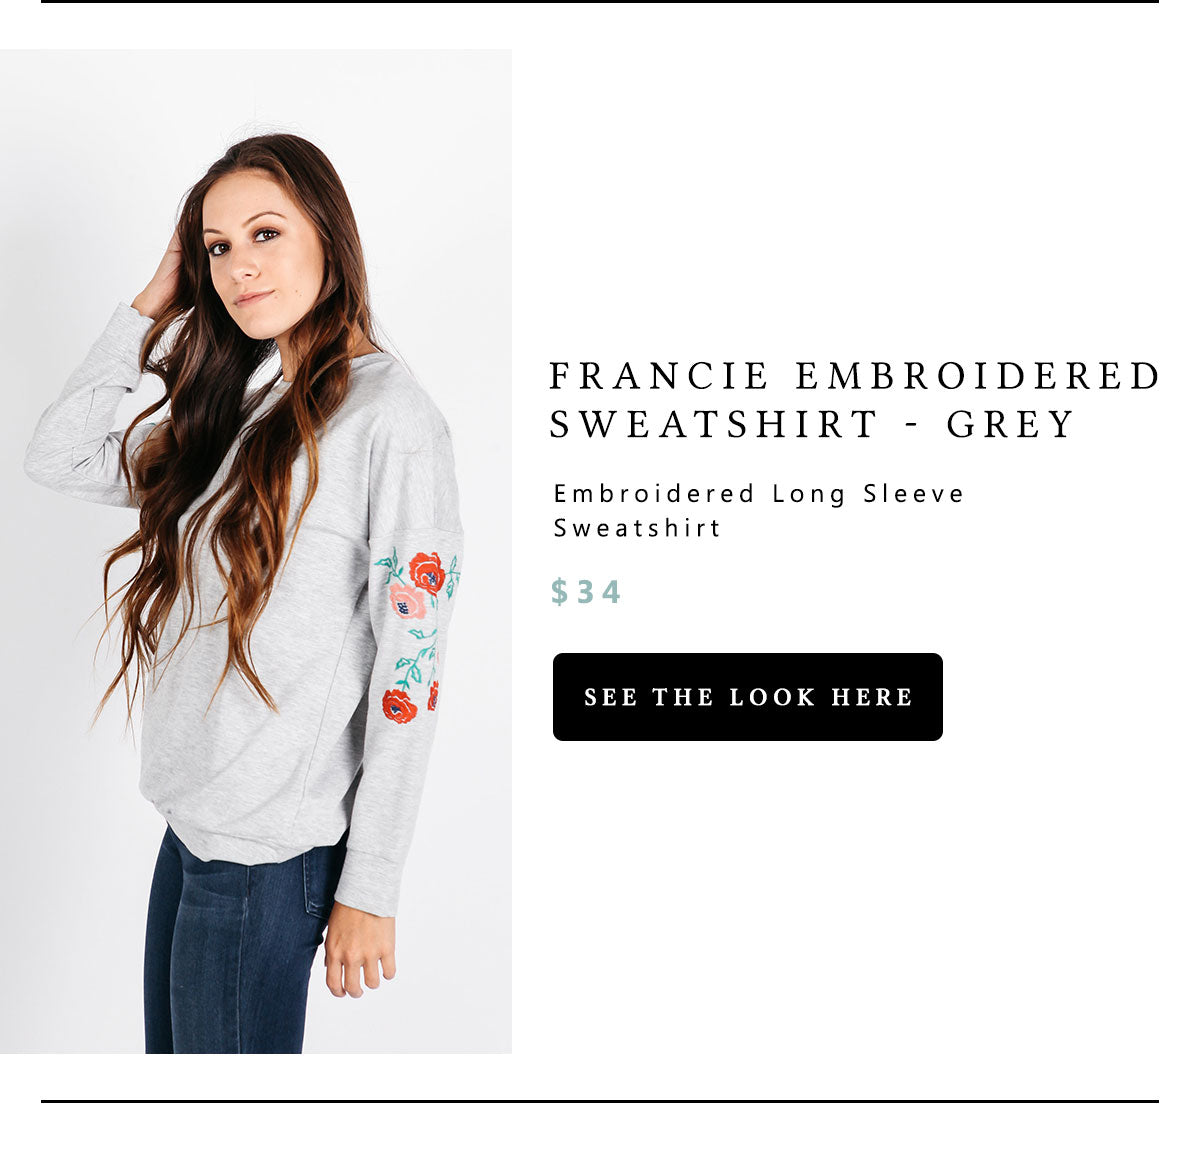 Francie Embroidered Sweatshirt - Grey